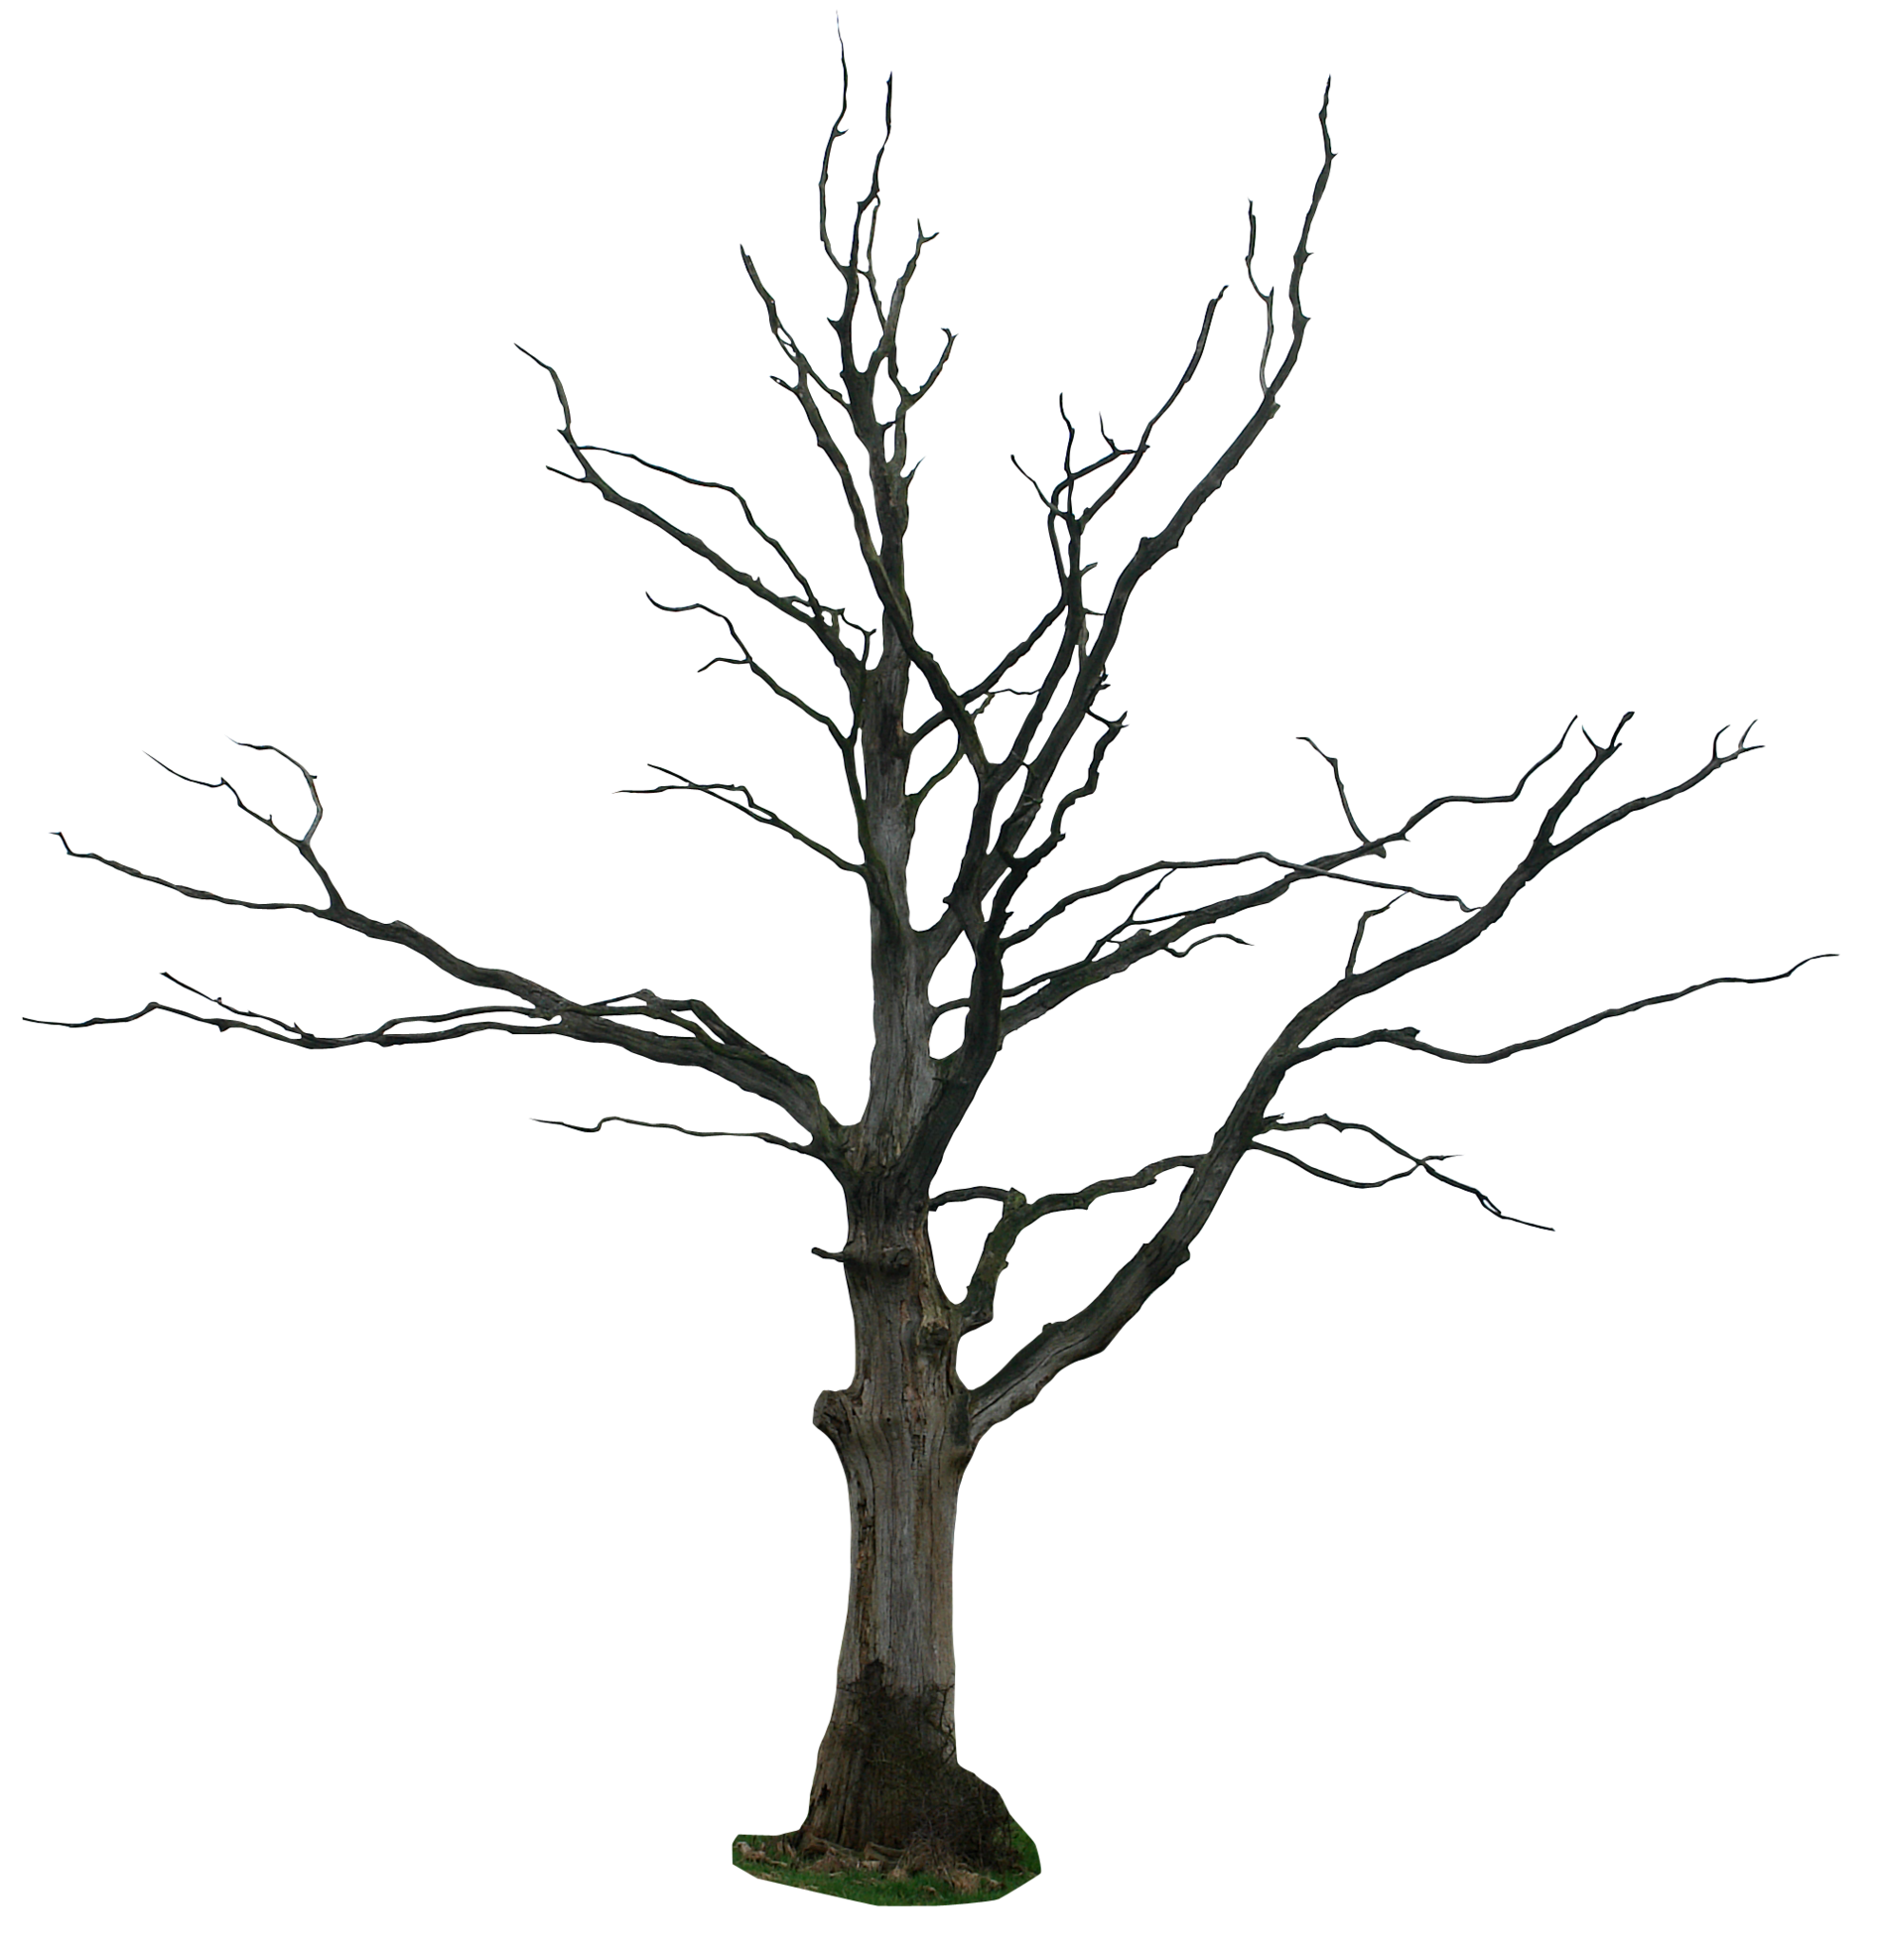 Dead Tree Dark Abstract clipart #6, Download drawings